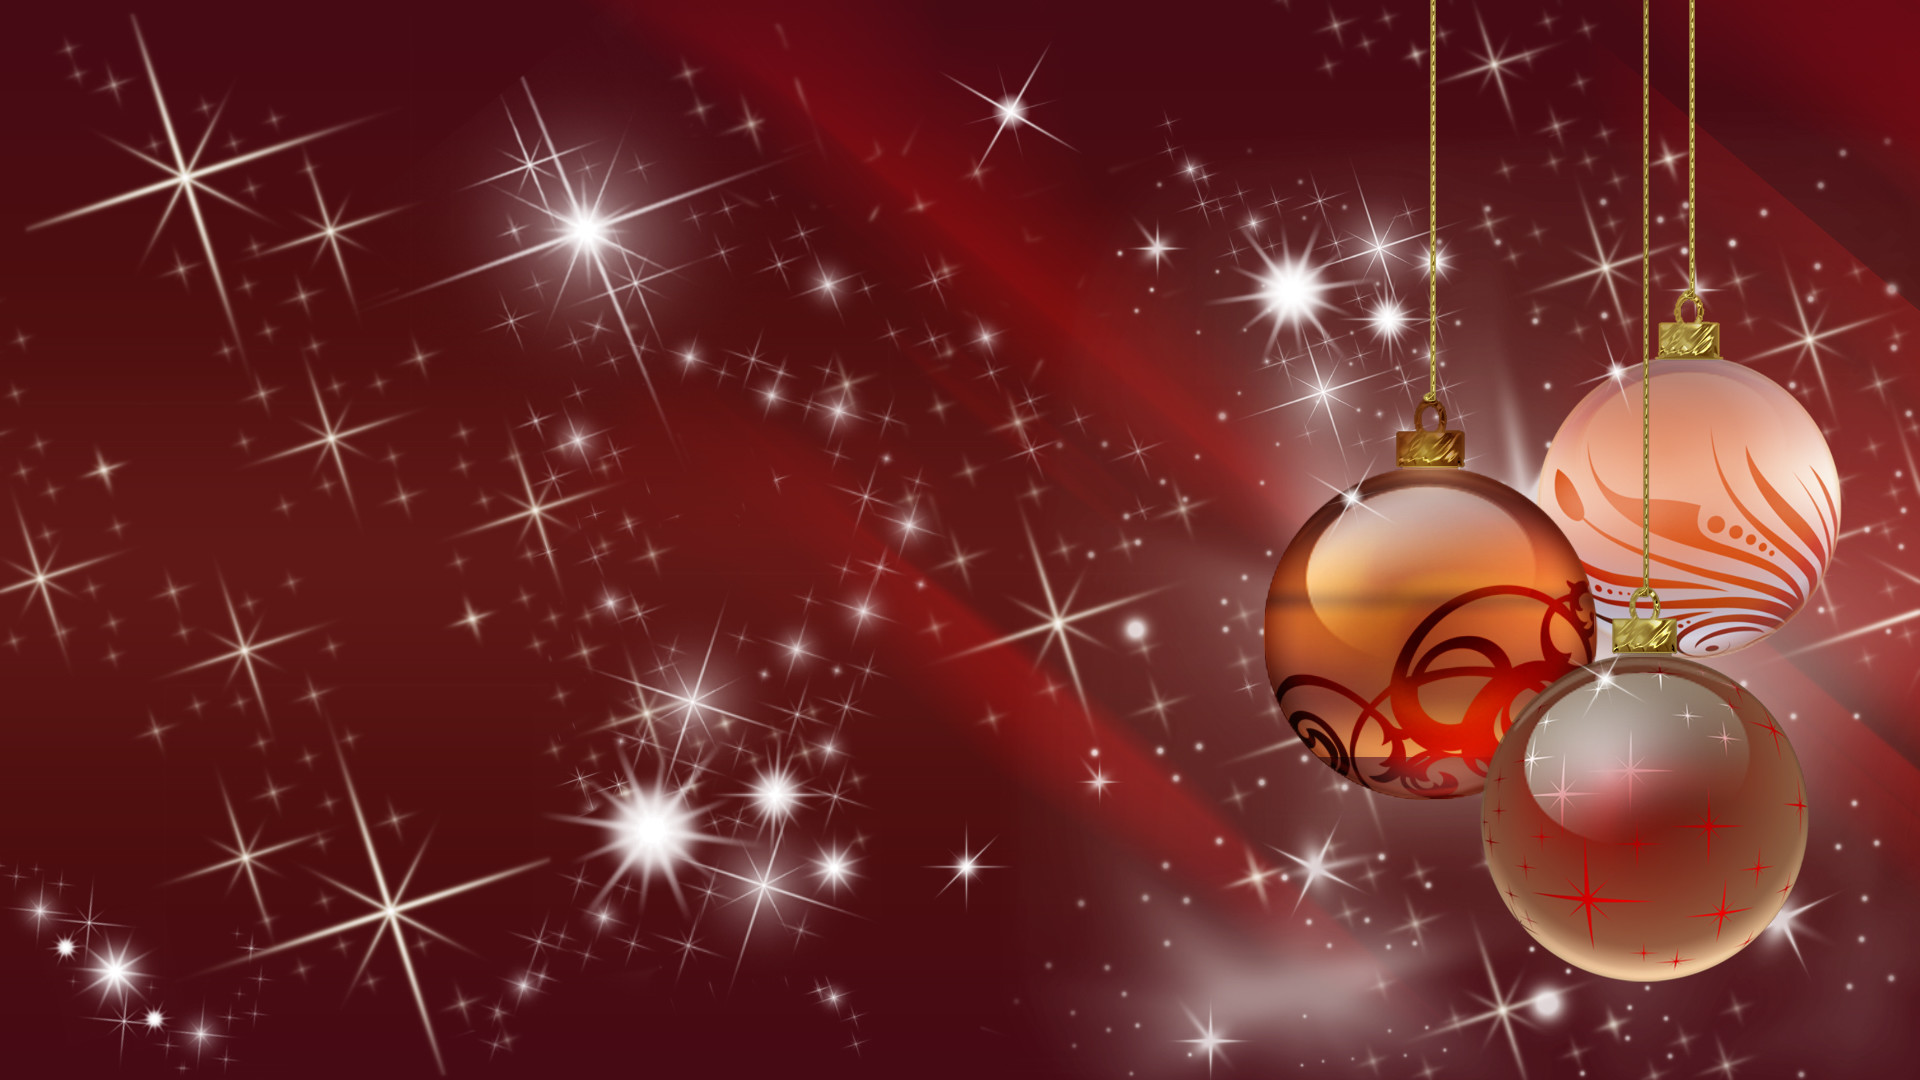 1920x1080 Animated Christmas Desktop Backgrounds, wallpaper, Animated .